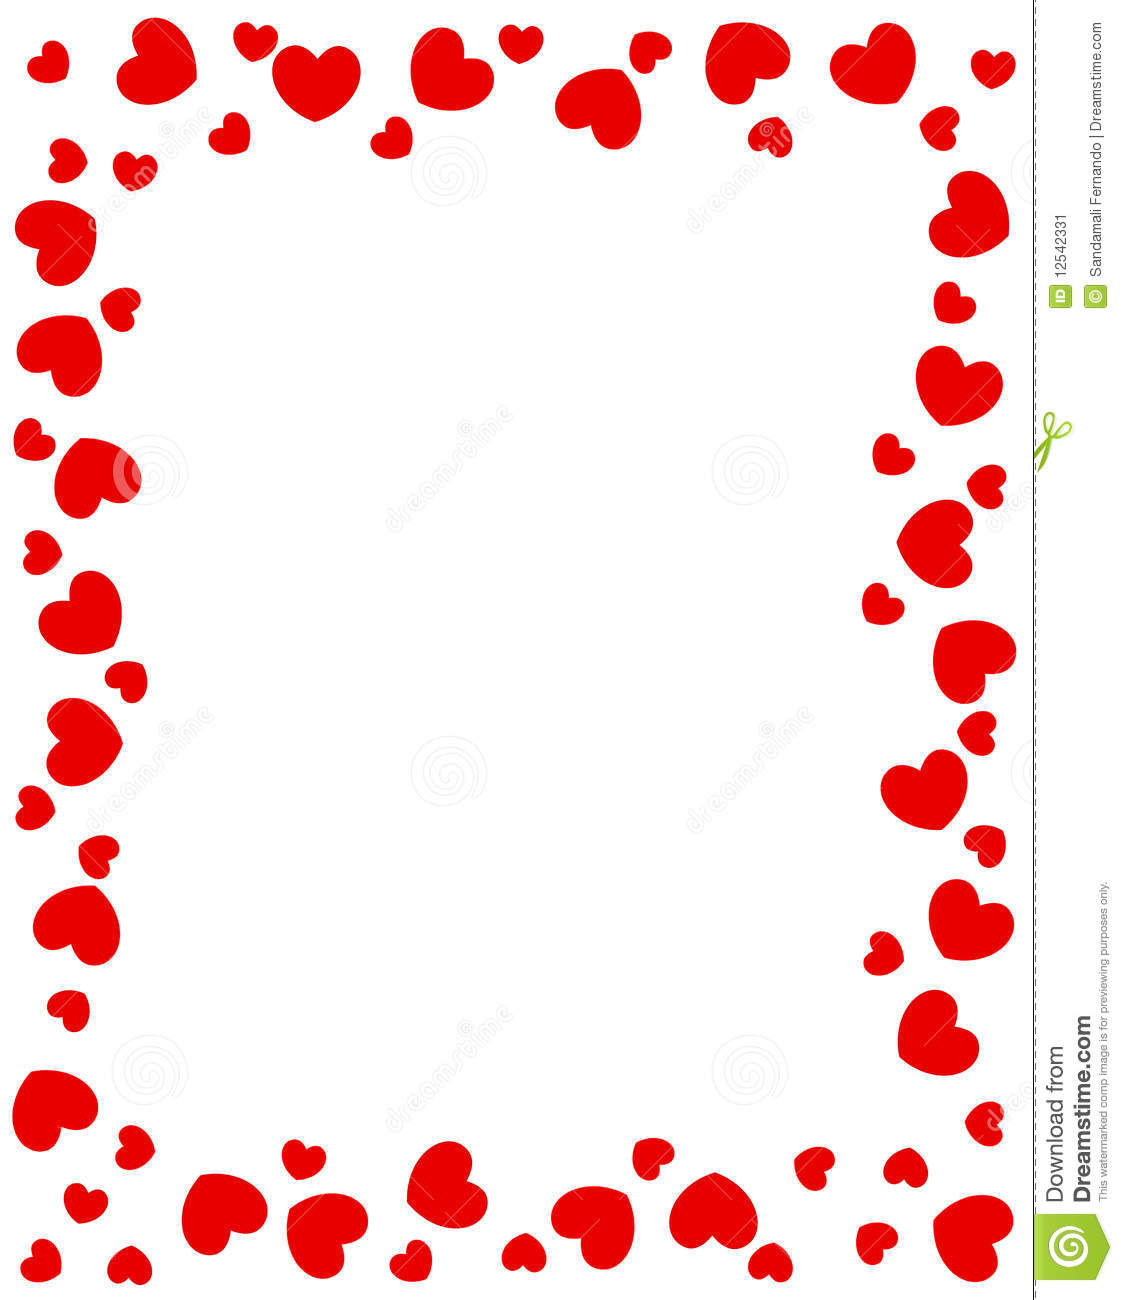 More Similar Stock Images Of Red Hearts -More Similar Stock Images Of Red Hearts Border-6